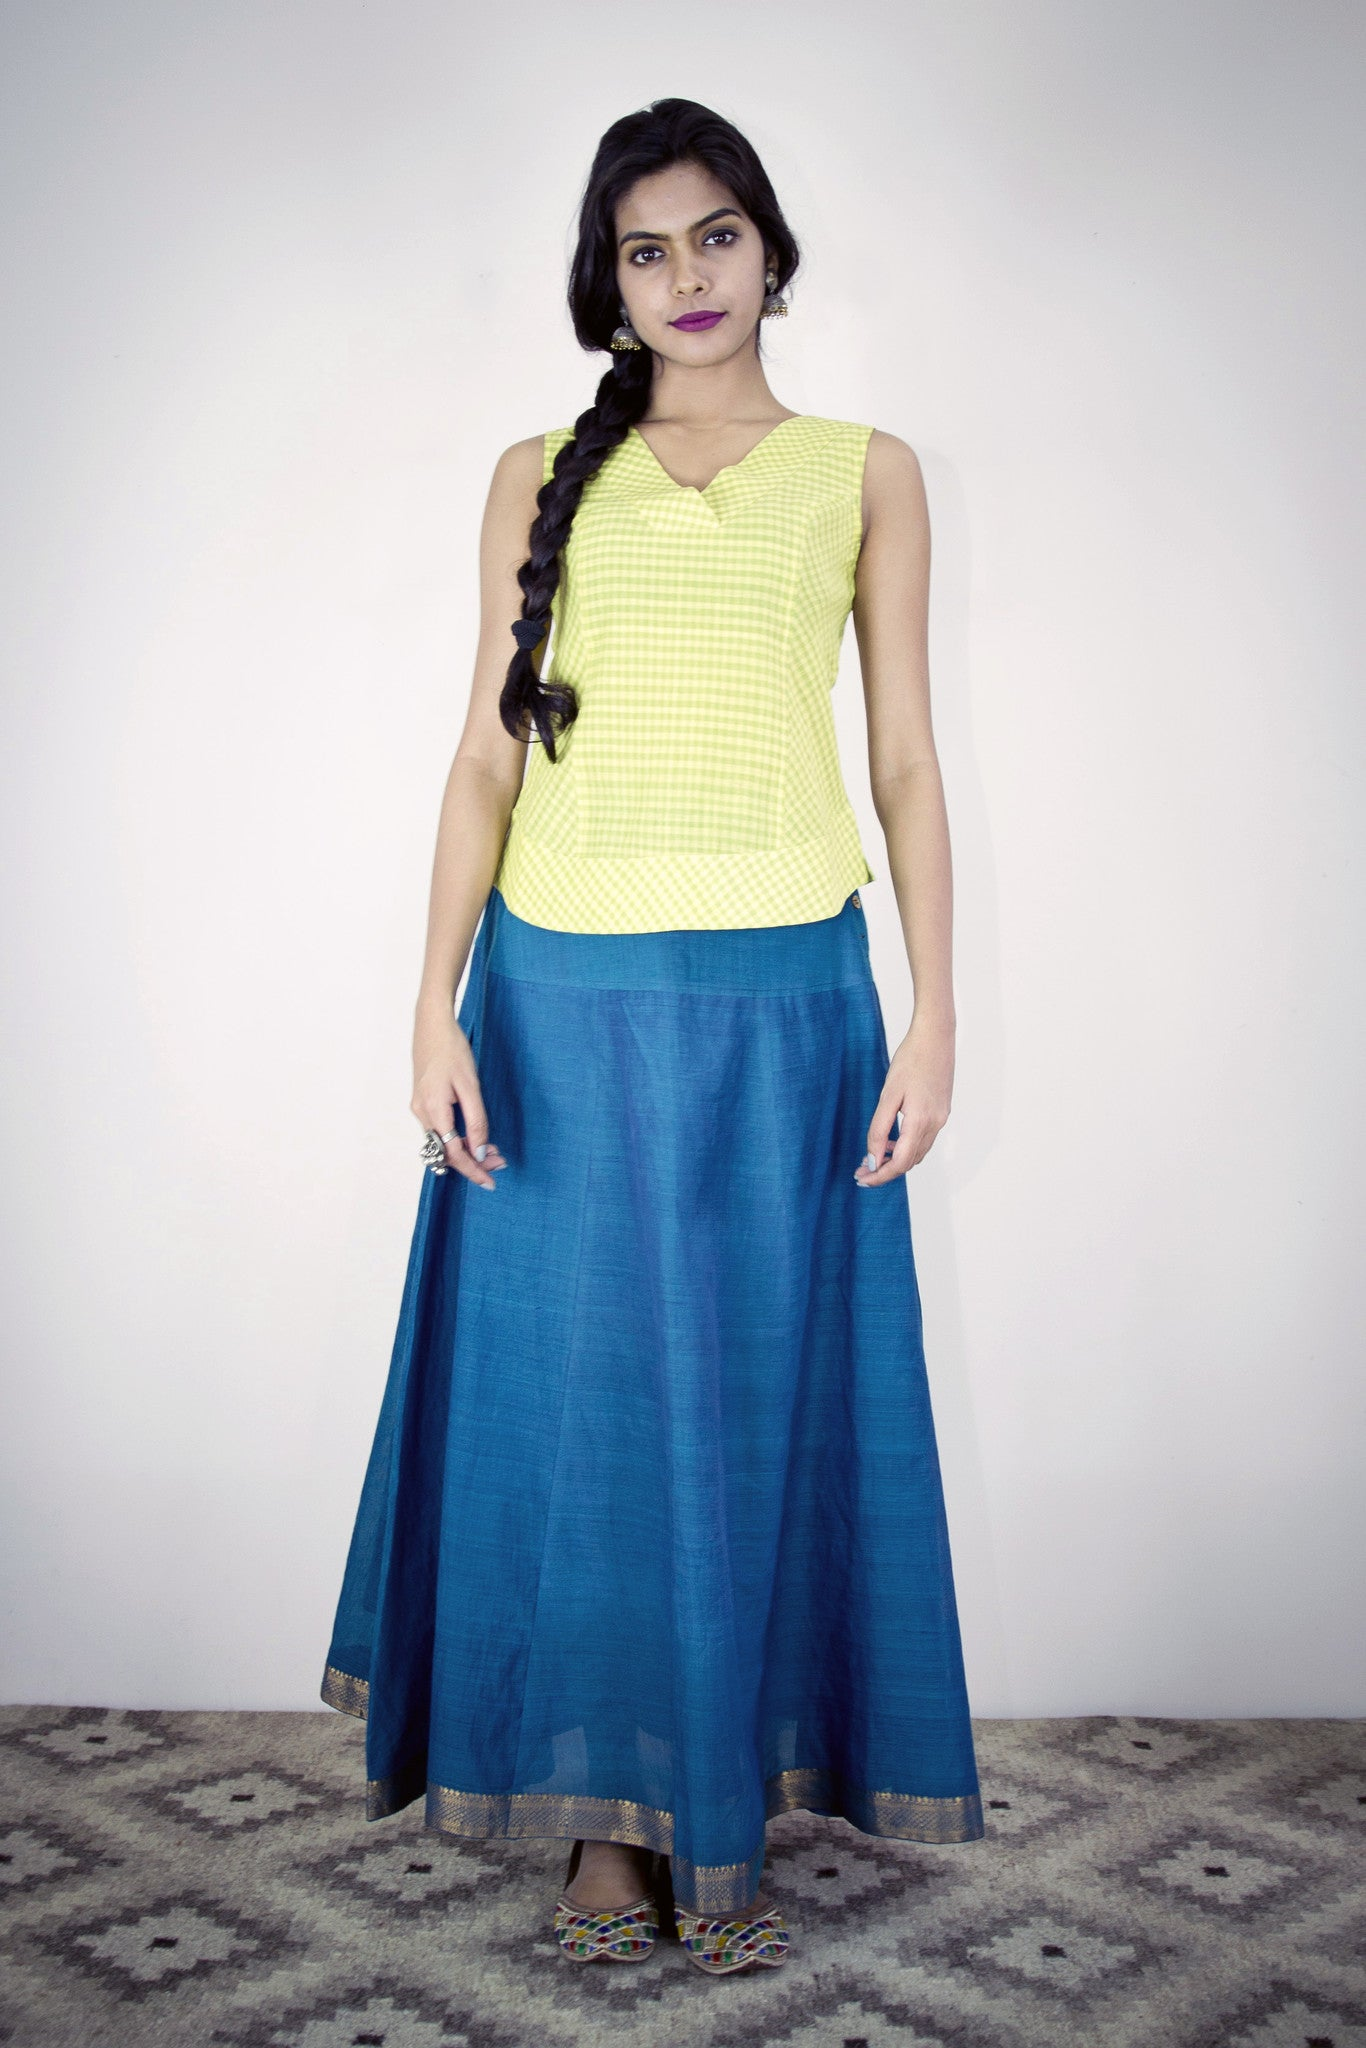 Model is wearing twirl skirt in peacock blue mangalgiri with neon green gypsy top. The skirt has a back waist elastic. With lining.